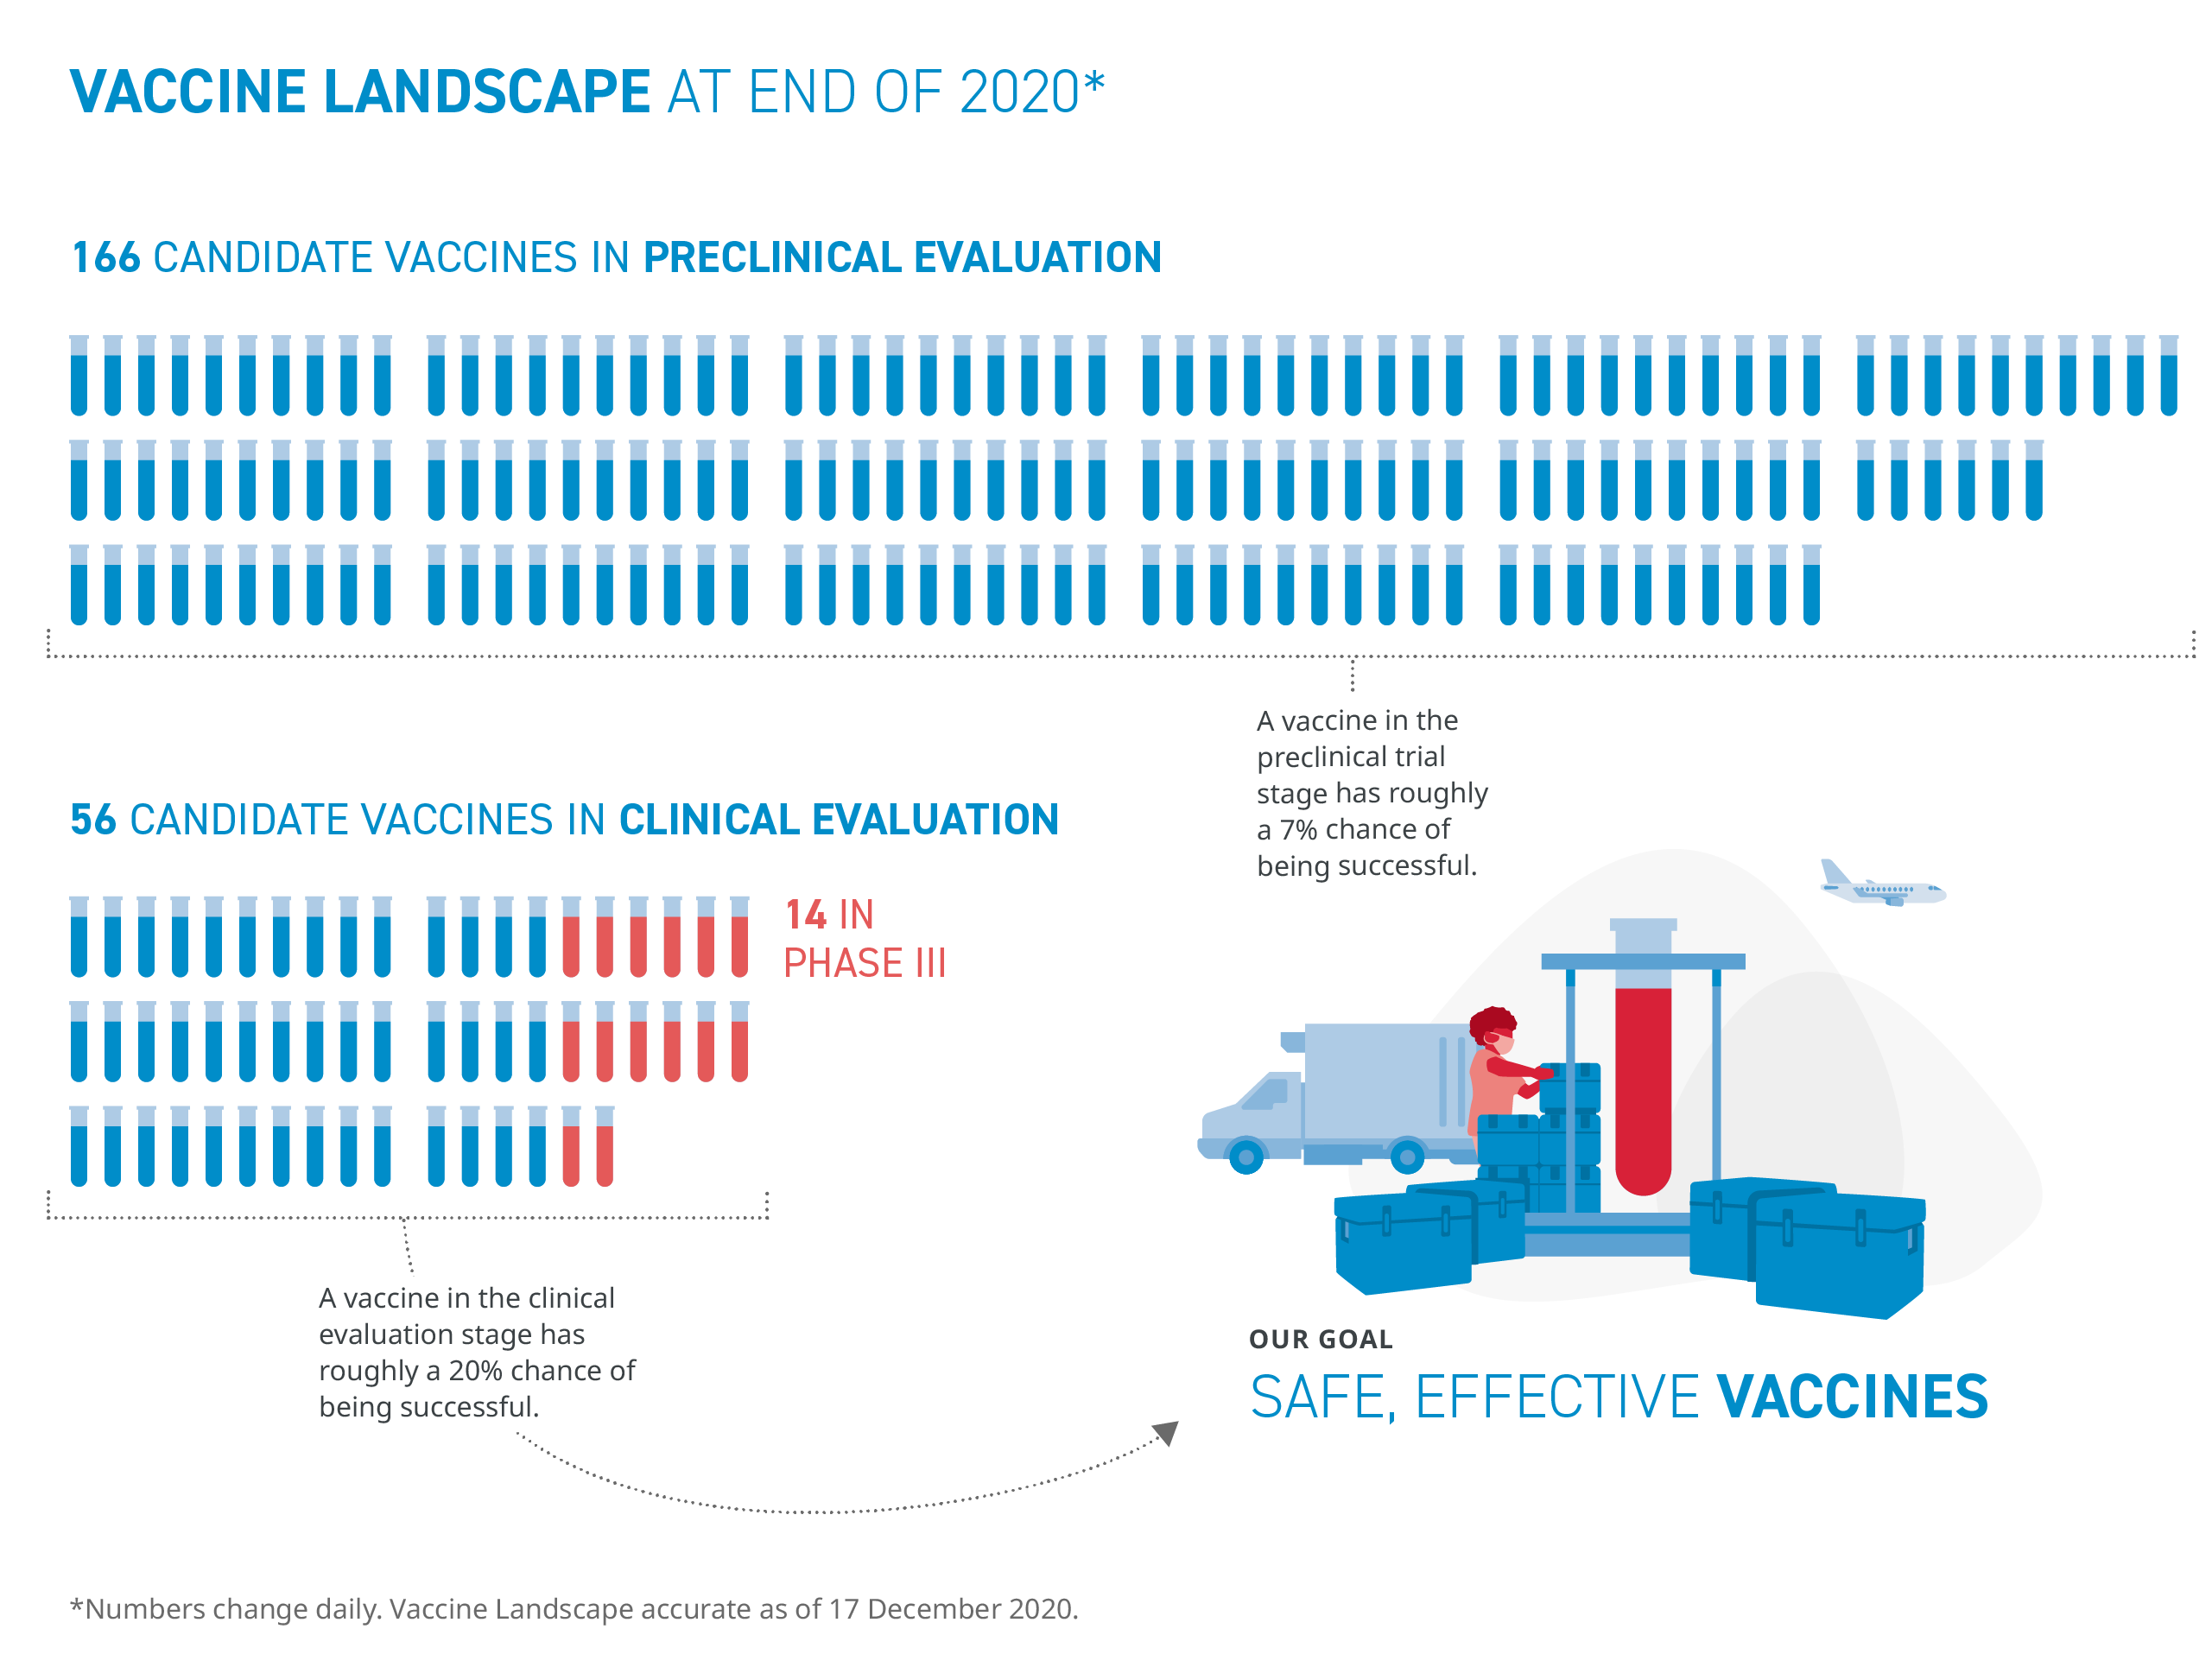 Illustration of the vaccine landscape at the end of 2020